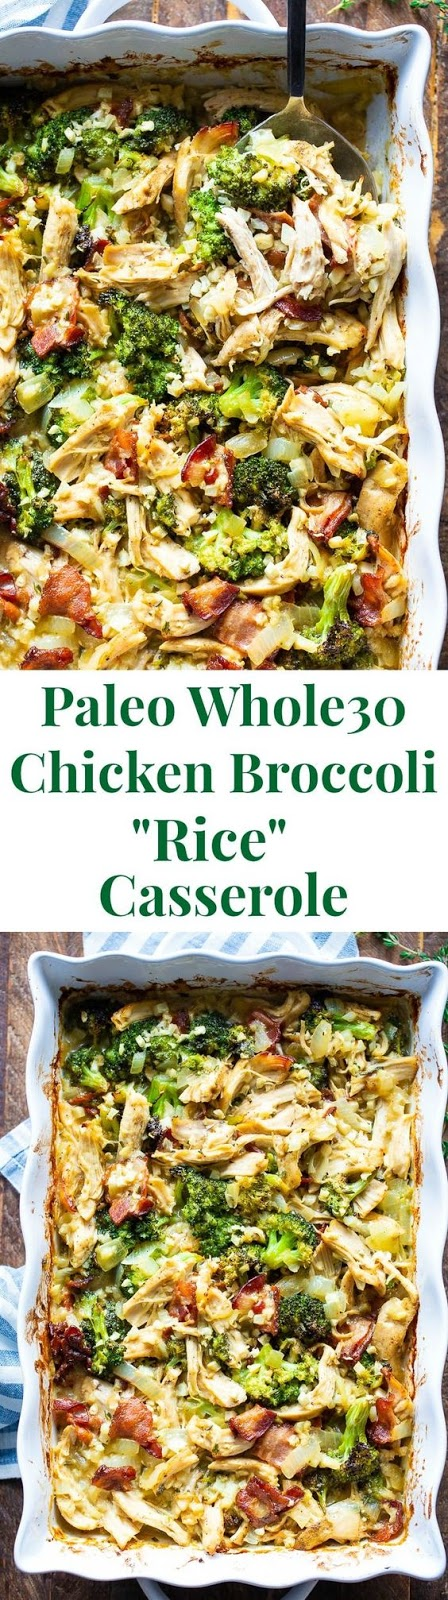 "Paleo Chicken Broccoli ""Rice"" Casserole #maincourse #paleo #chicken #broccoli #rice #casserole"